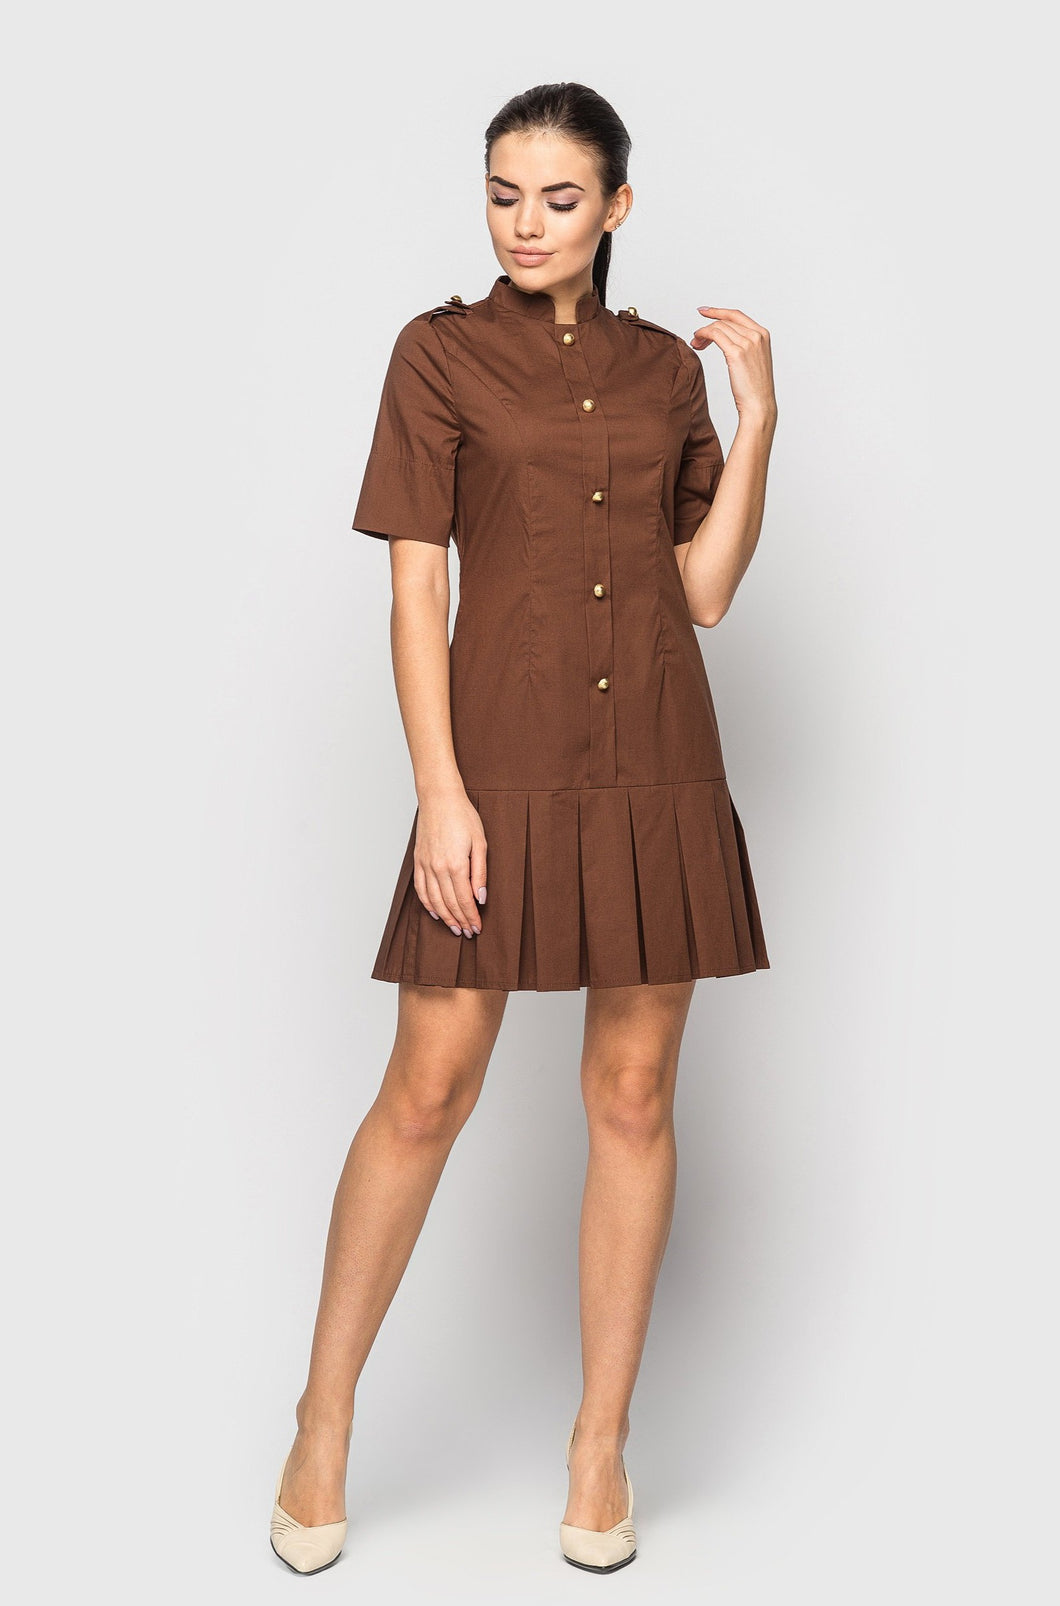 High neck pleated skirt mini dress women